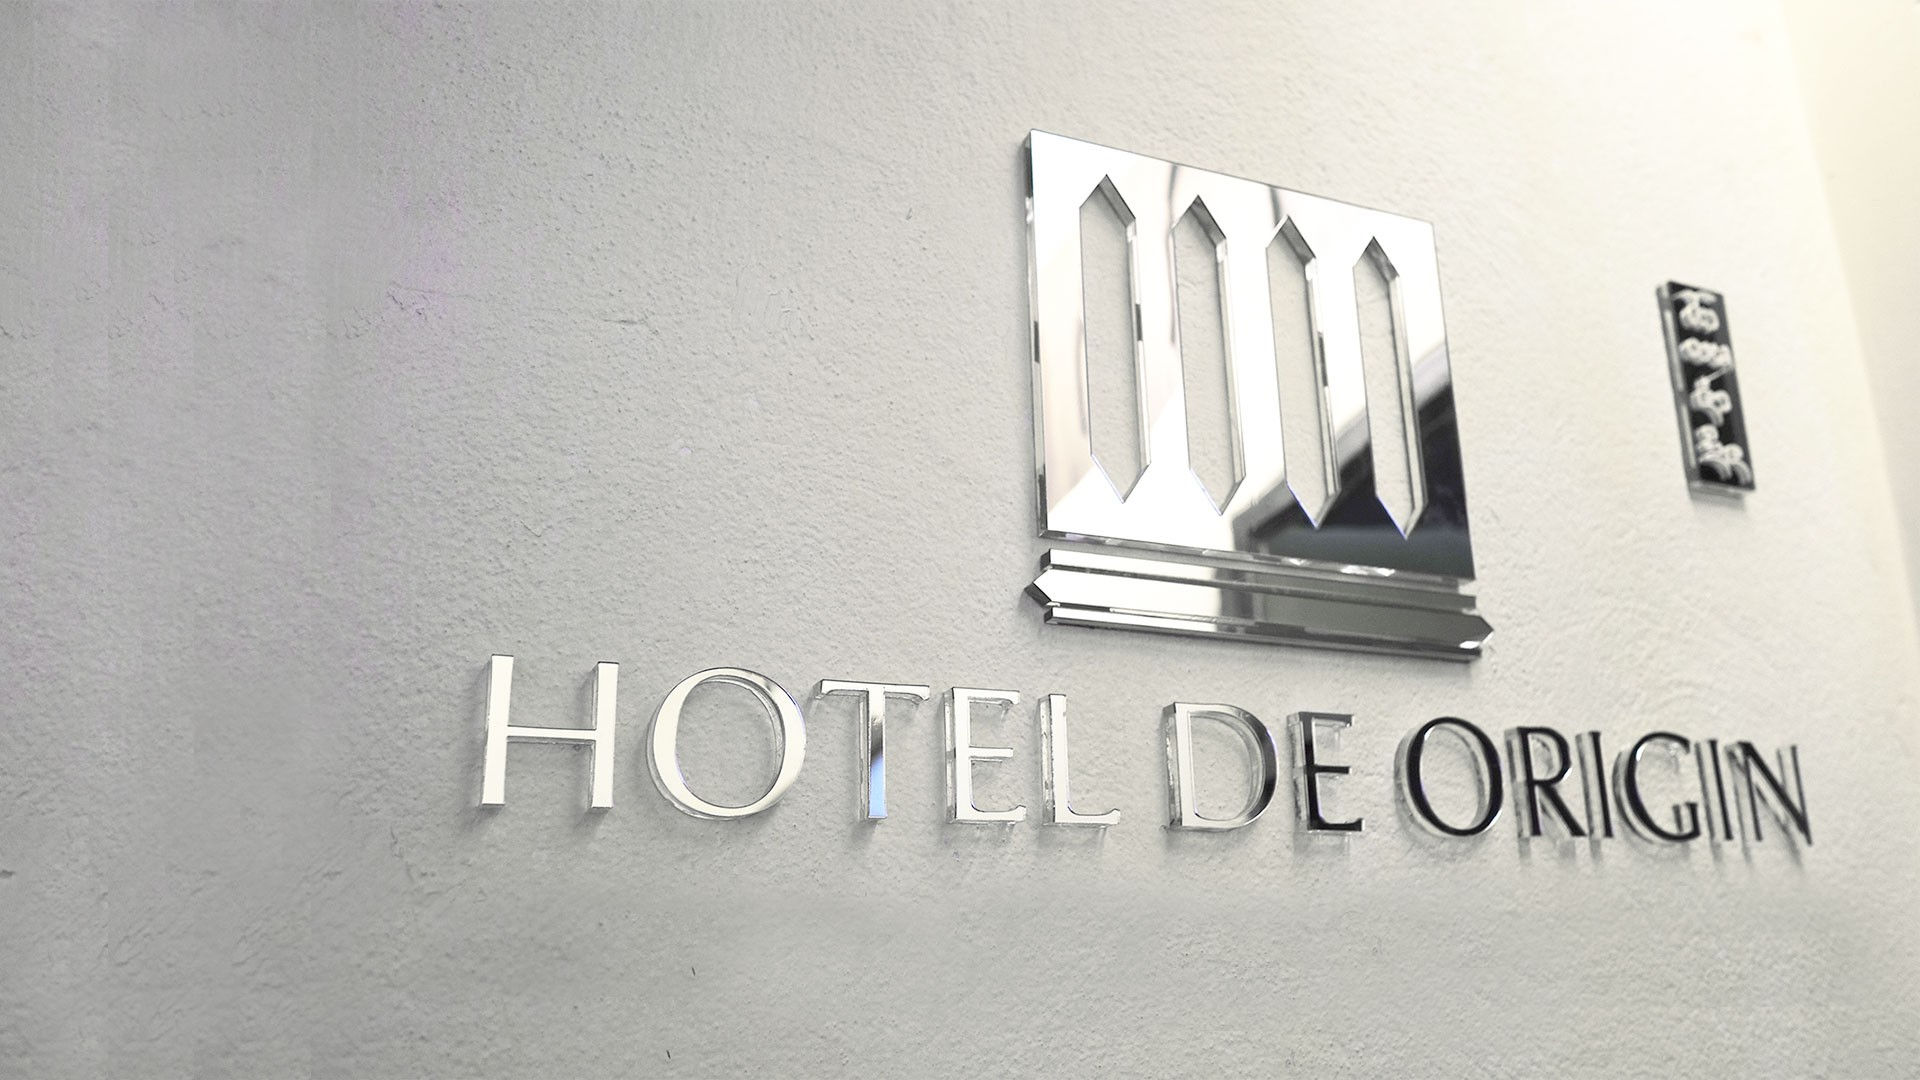 Welcome to the Hotel de Origin